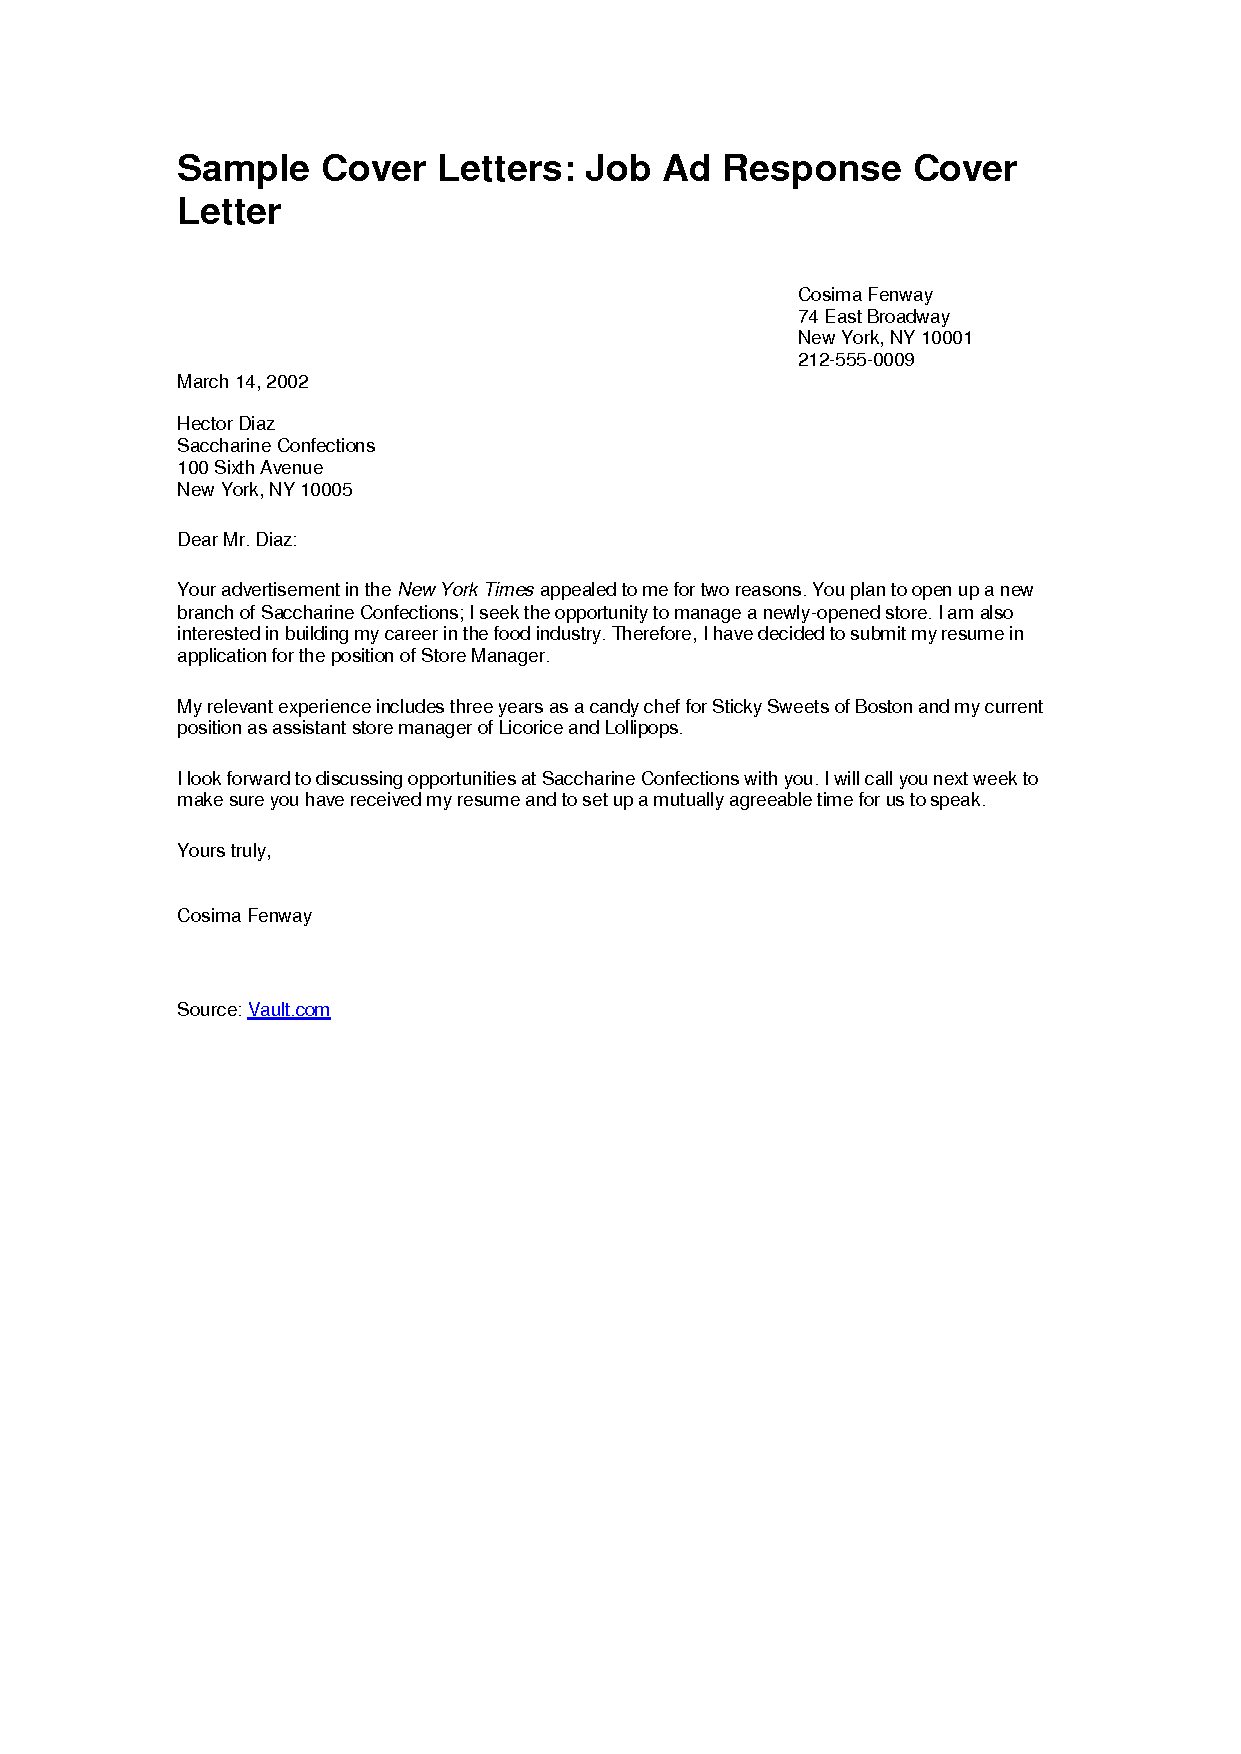 Sample cover letter format for job application for What to add in a cover letter